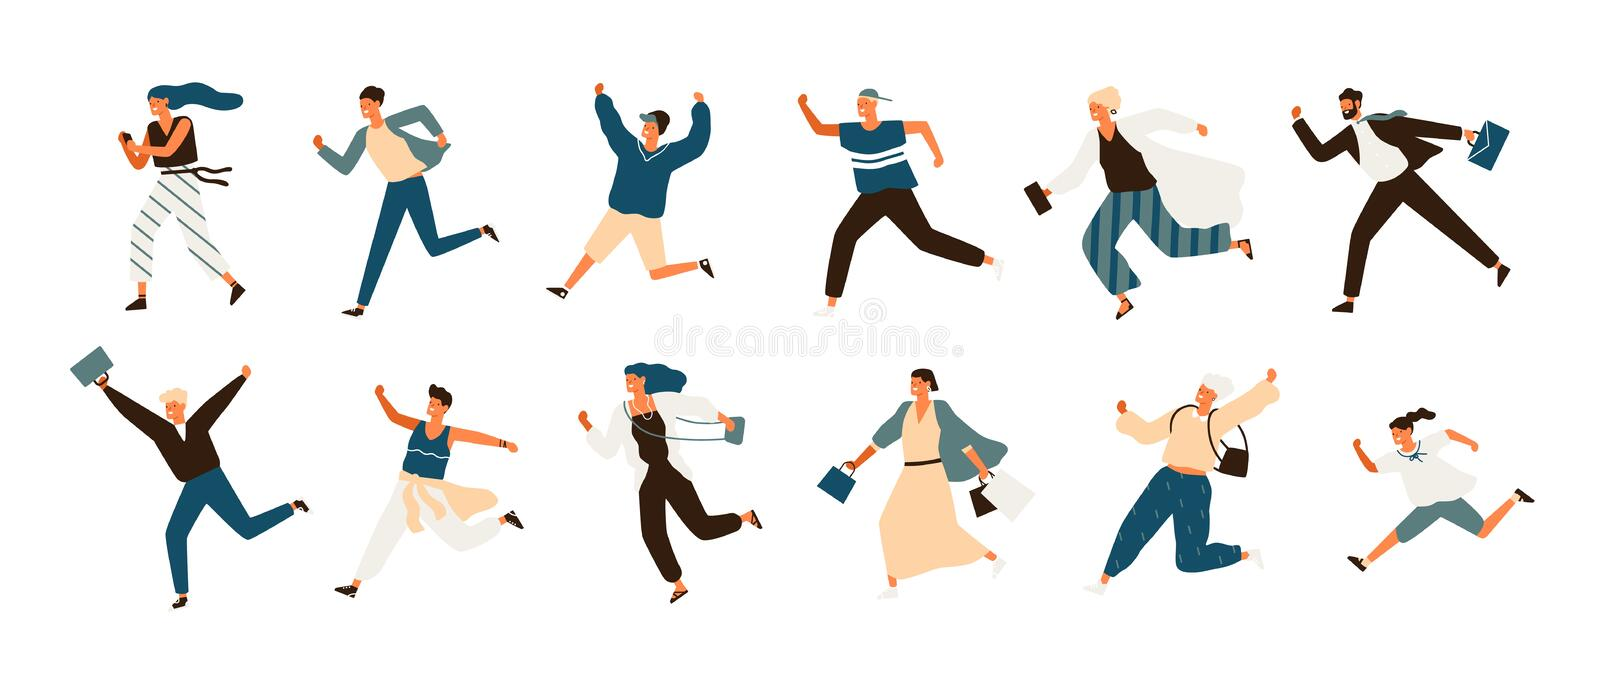 Collection of joyful running men and women dressed in casual clothes. Set of funny smiling people in hurry or haste royalty free illustration